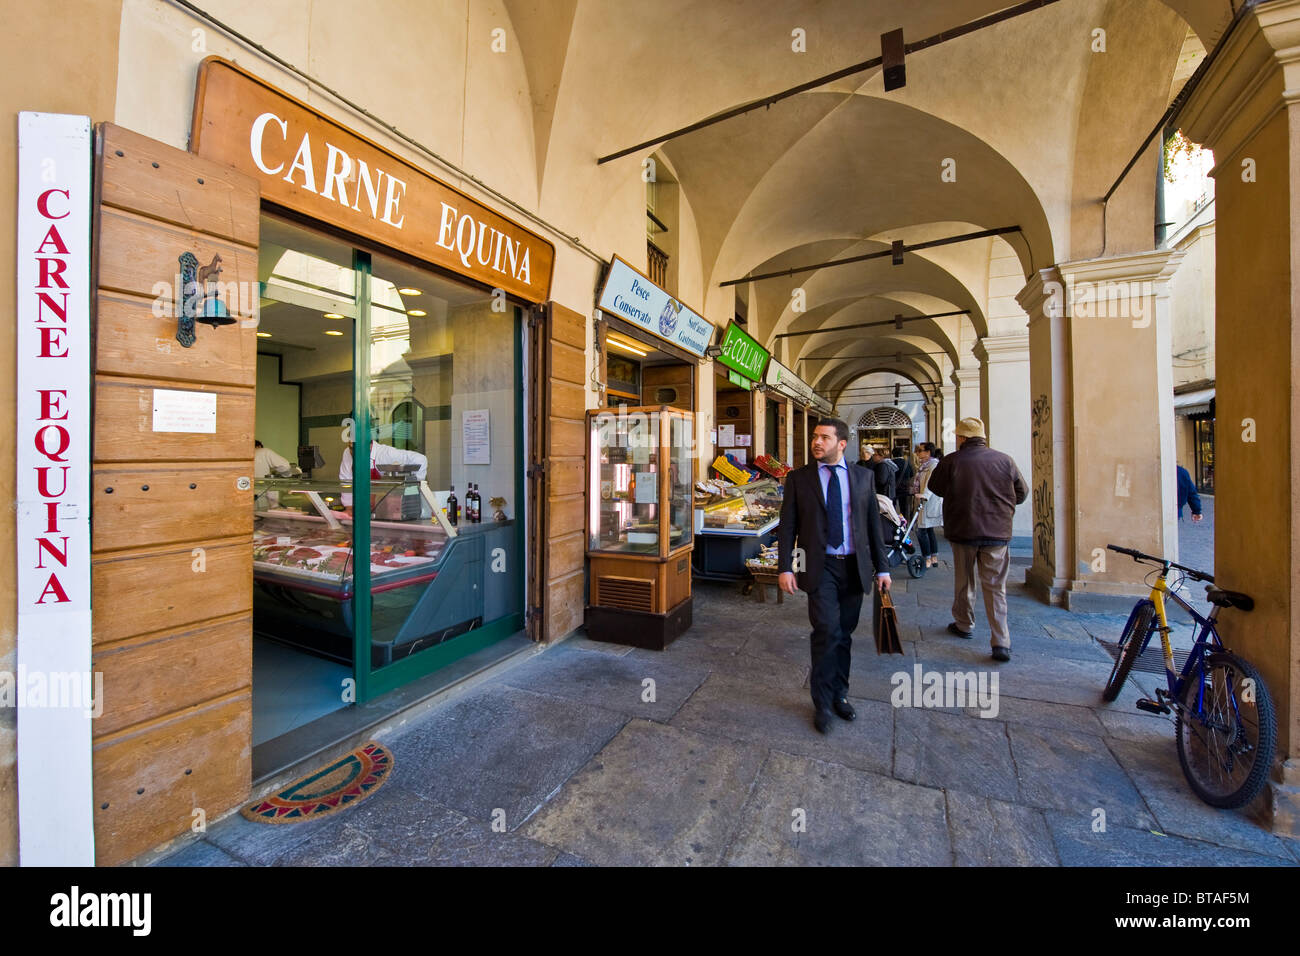 Market, Reggio Emilia, Italy Stock Photo: 32193552 - Alamy